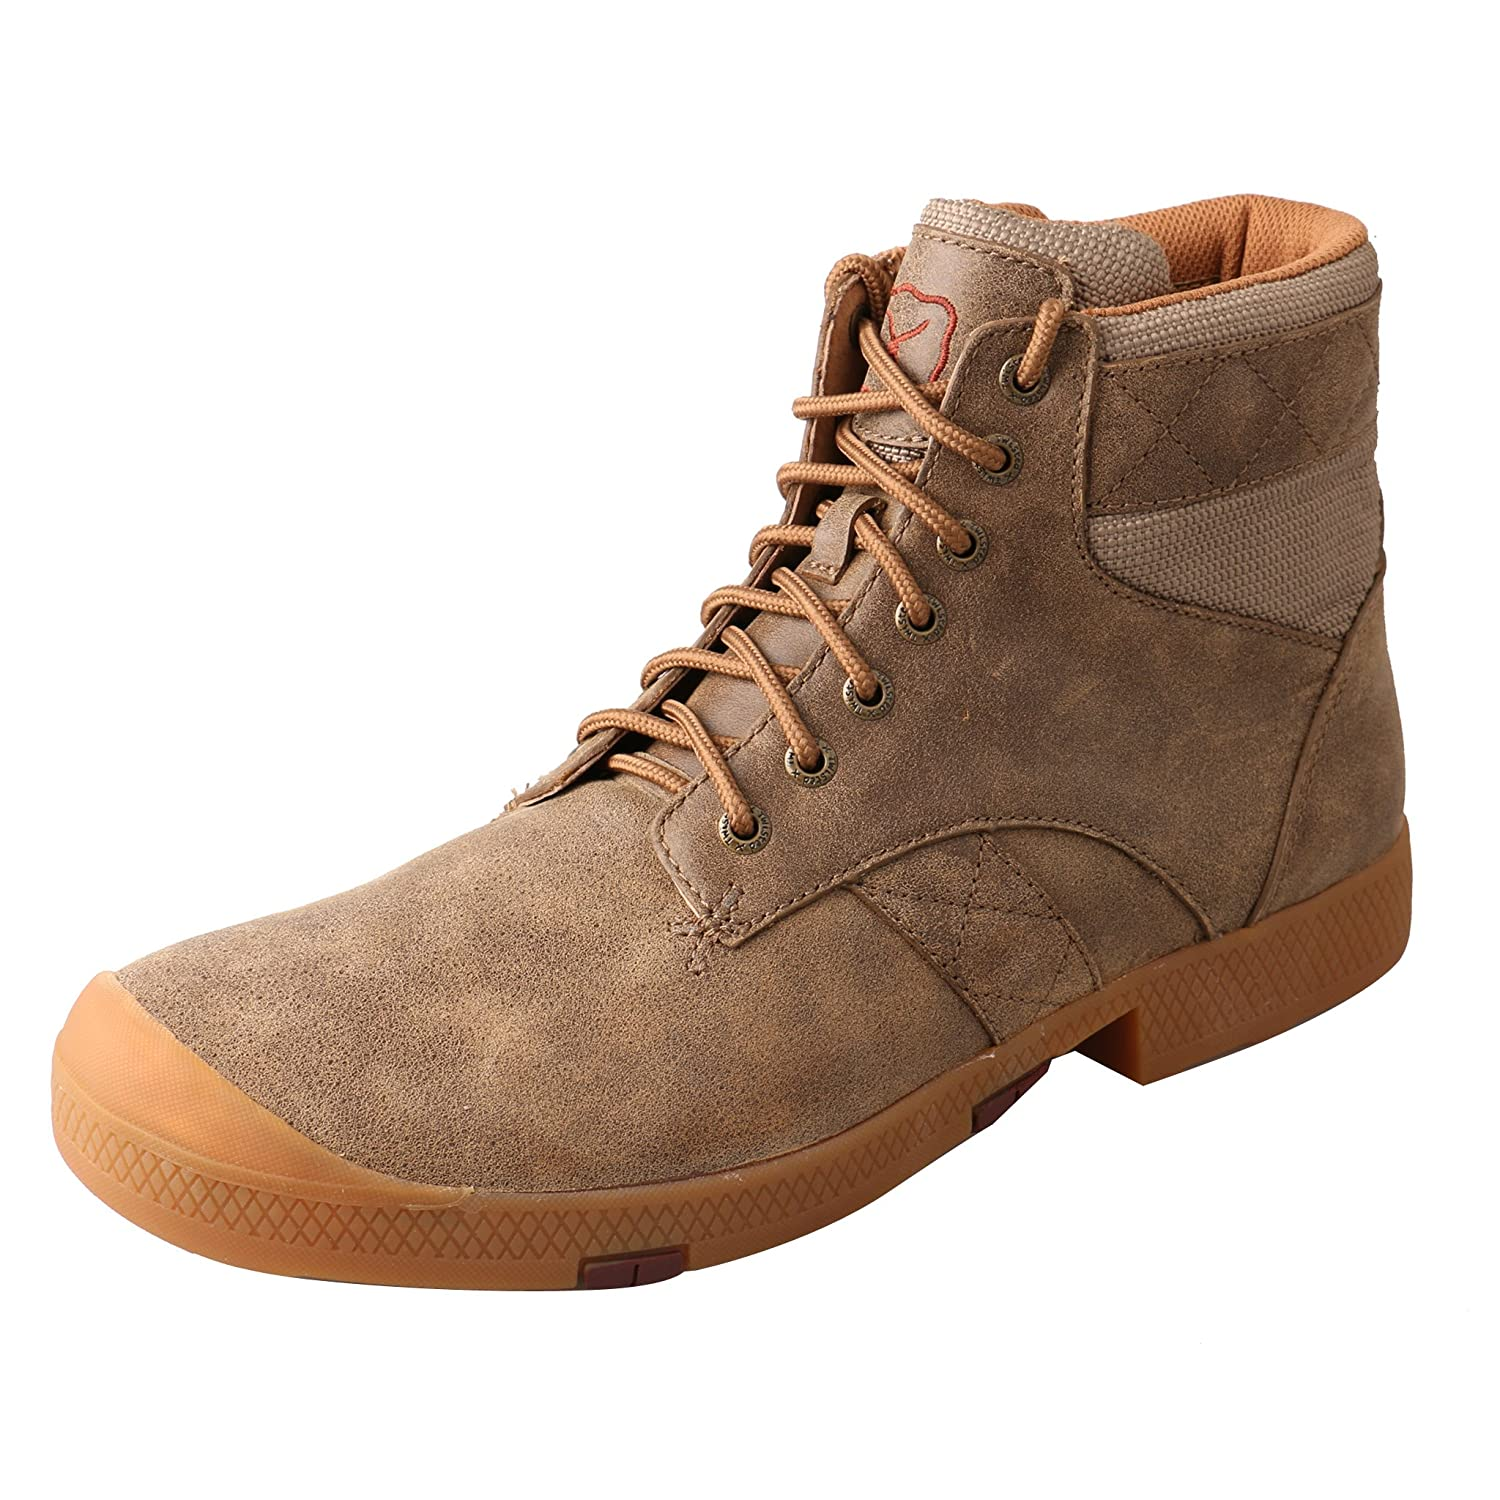 Amazon.com: Twisted X Mens Casual Lace-Up Boot Round Toe Bomber 7 EE US: Clothing